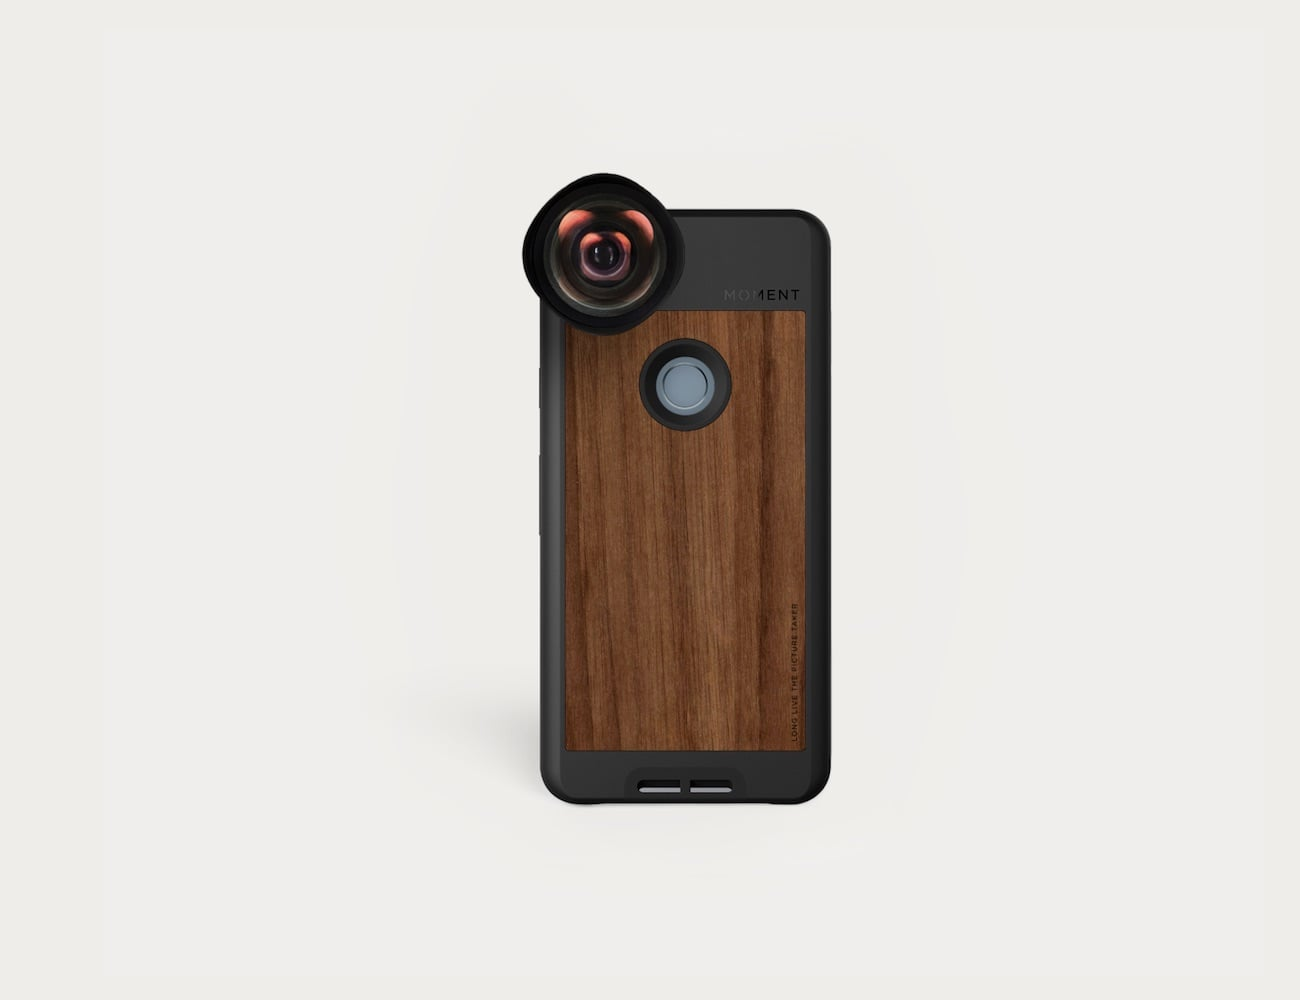 Moment Pixel 2 Photo Case